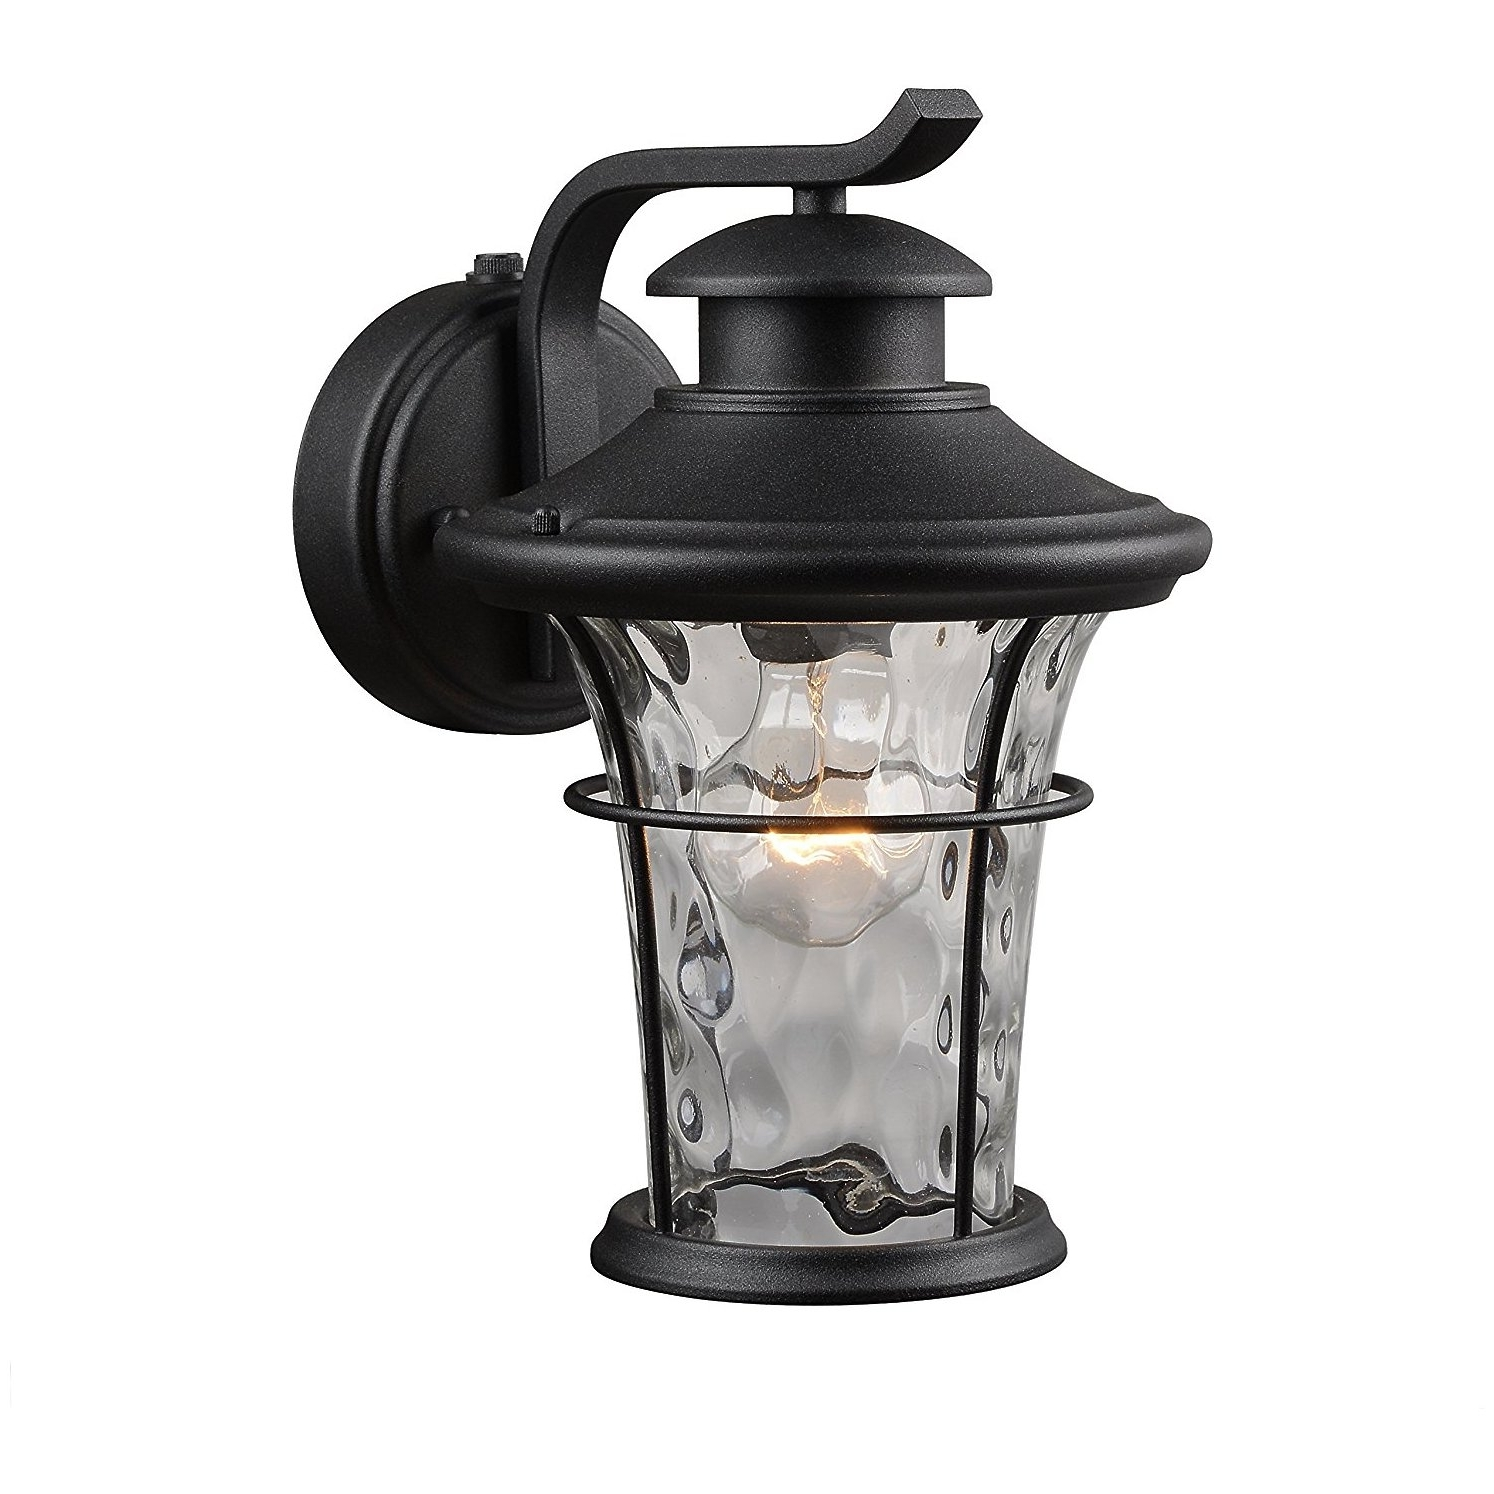 Outdoor Lanterns With Photocell In Most Up To Date Hardware House 21 2274 Outdoor Water Glass Wall Lantern With Photo (View 10 of 20)